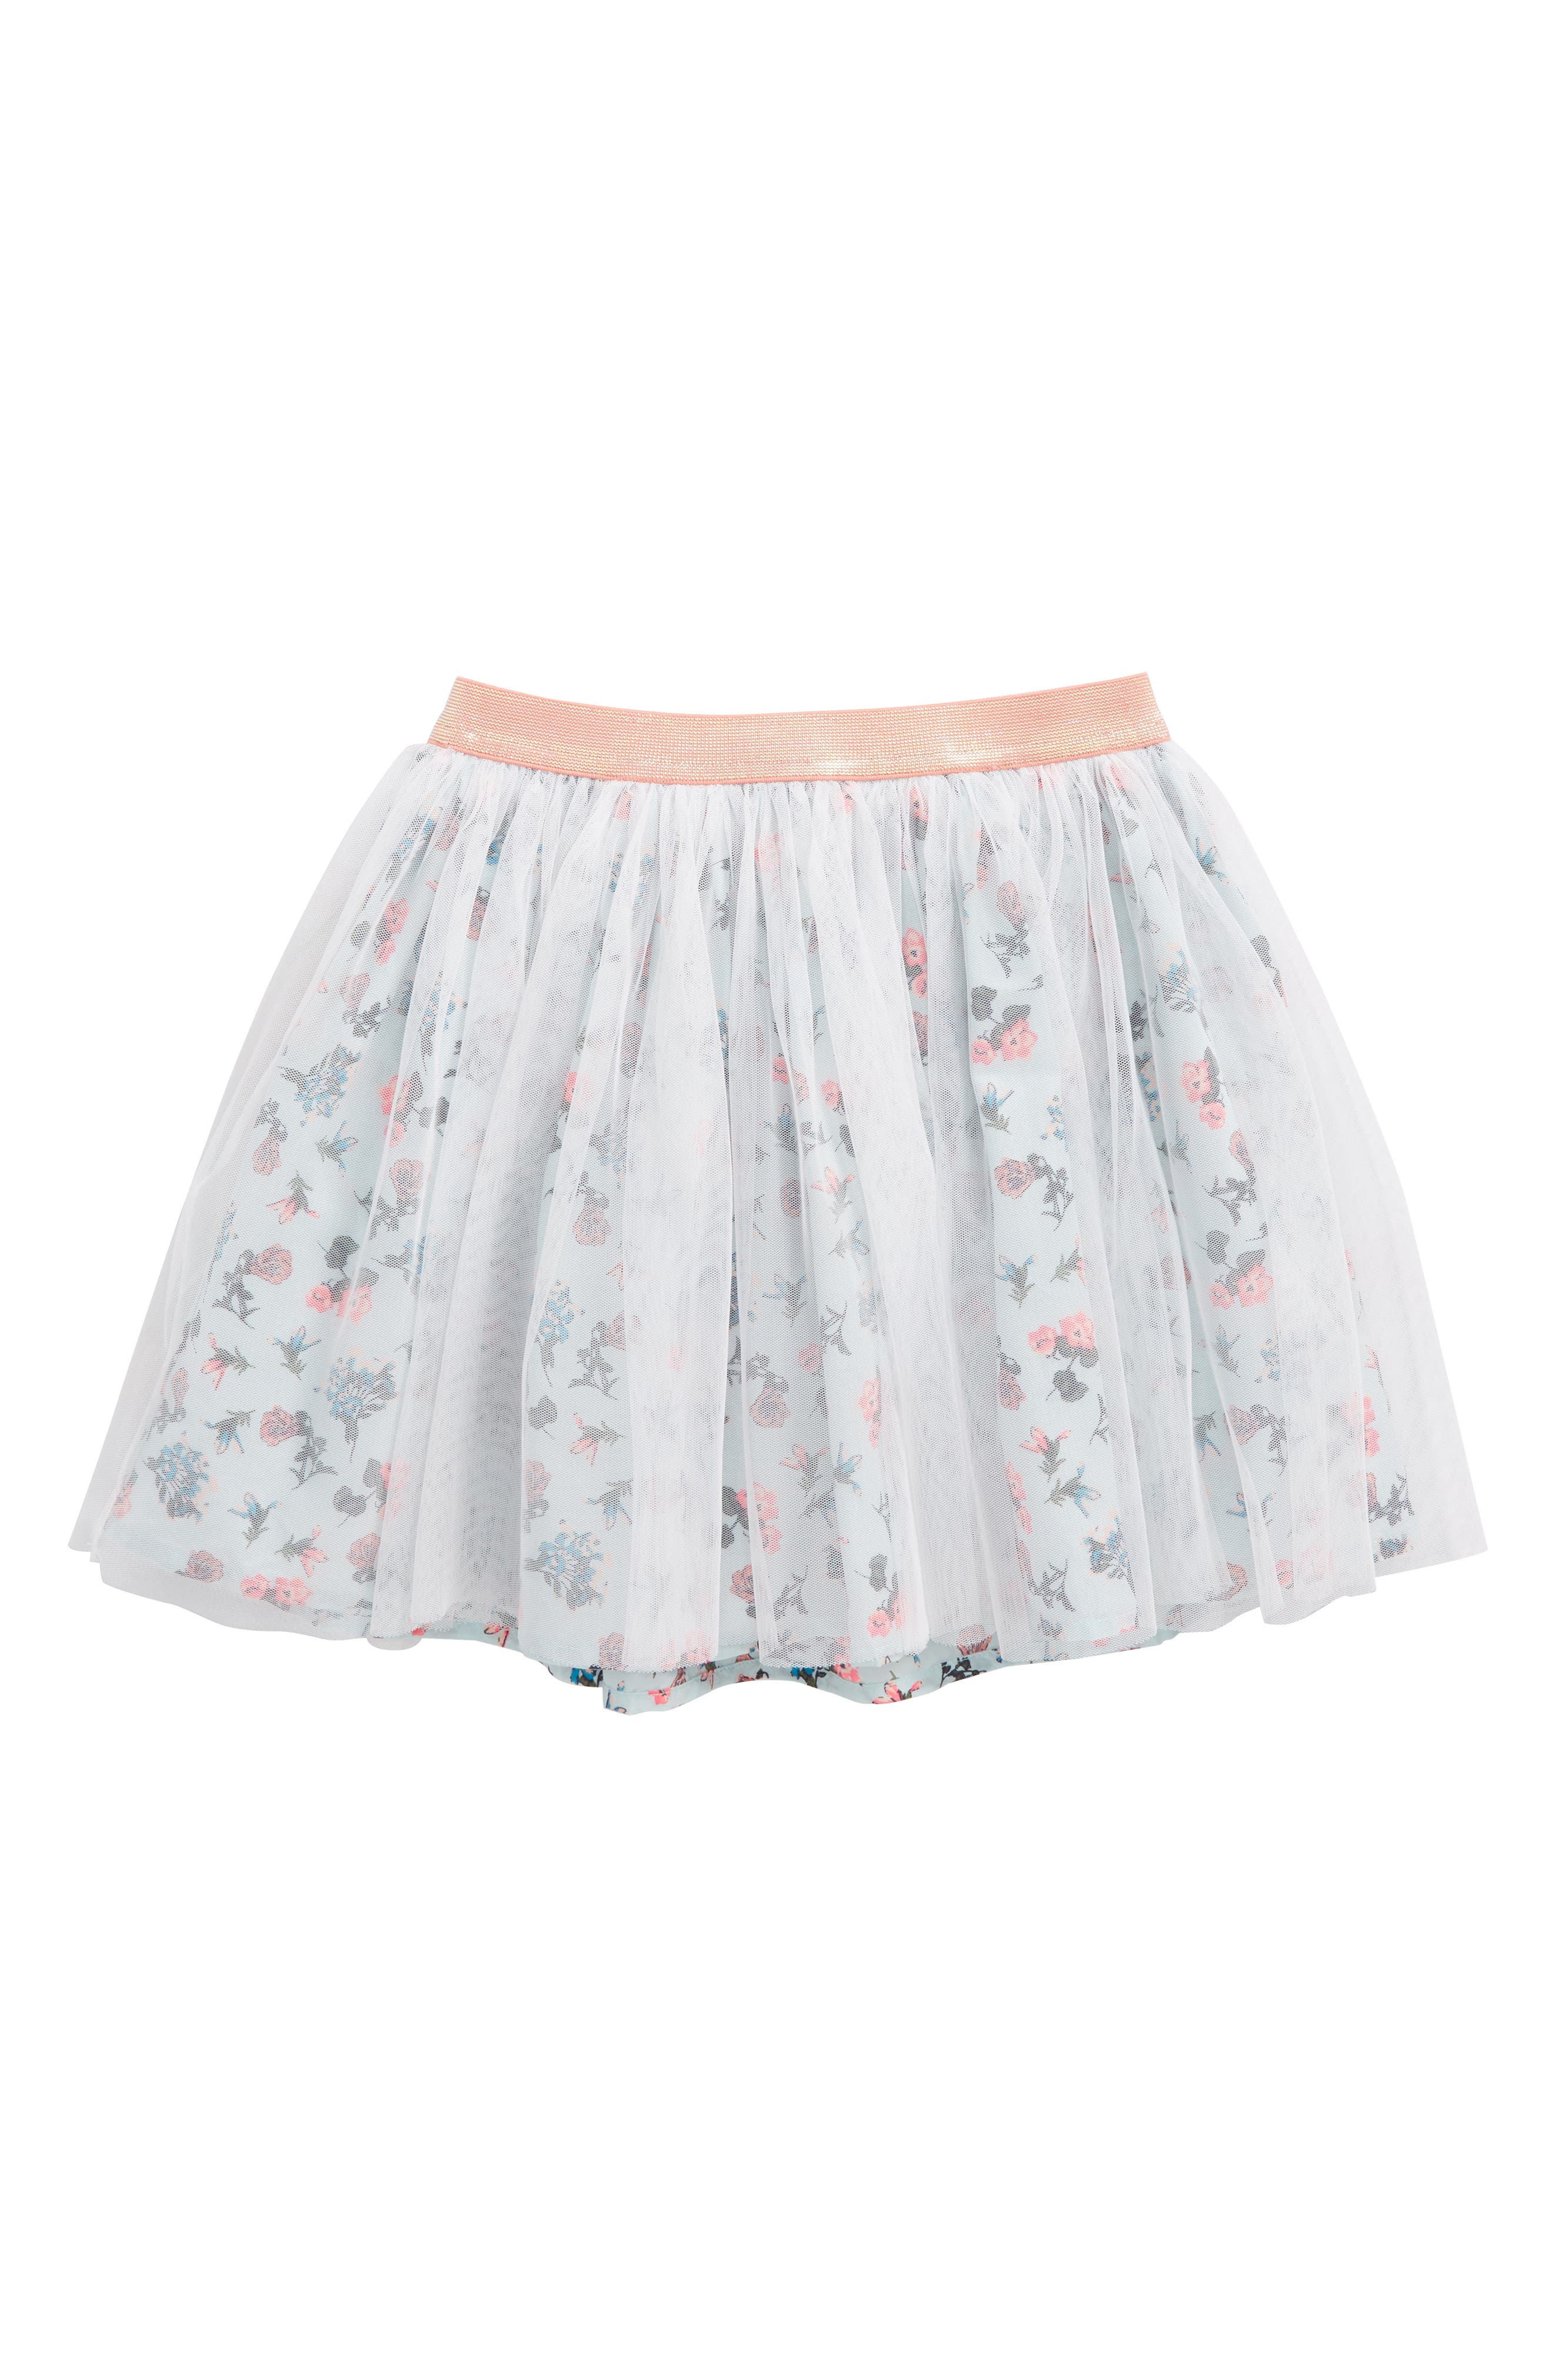 Floral Tulle Skirt,                         Main,                         color, Teal Fair Spring Blooms